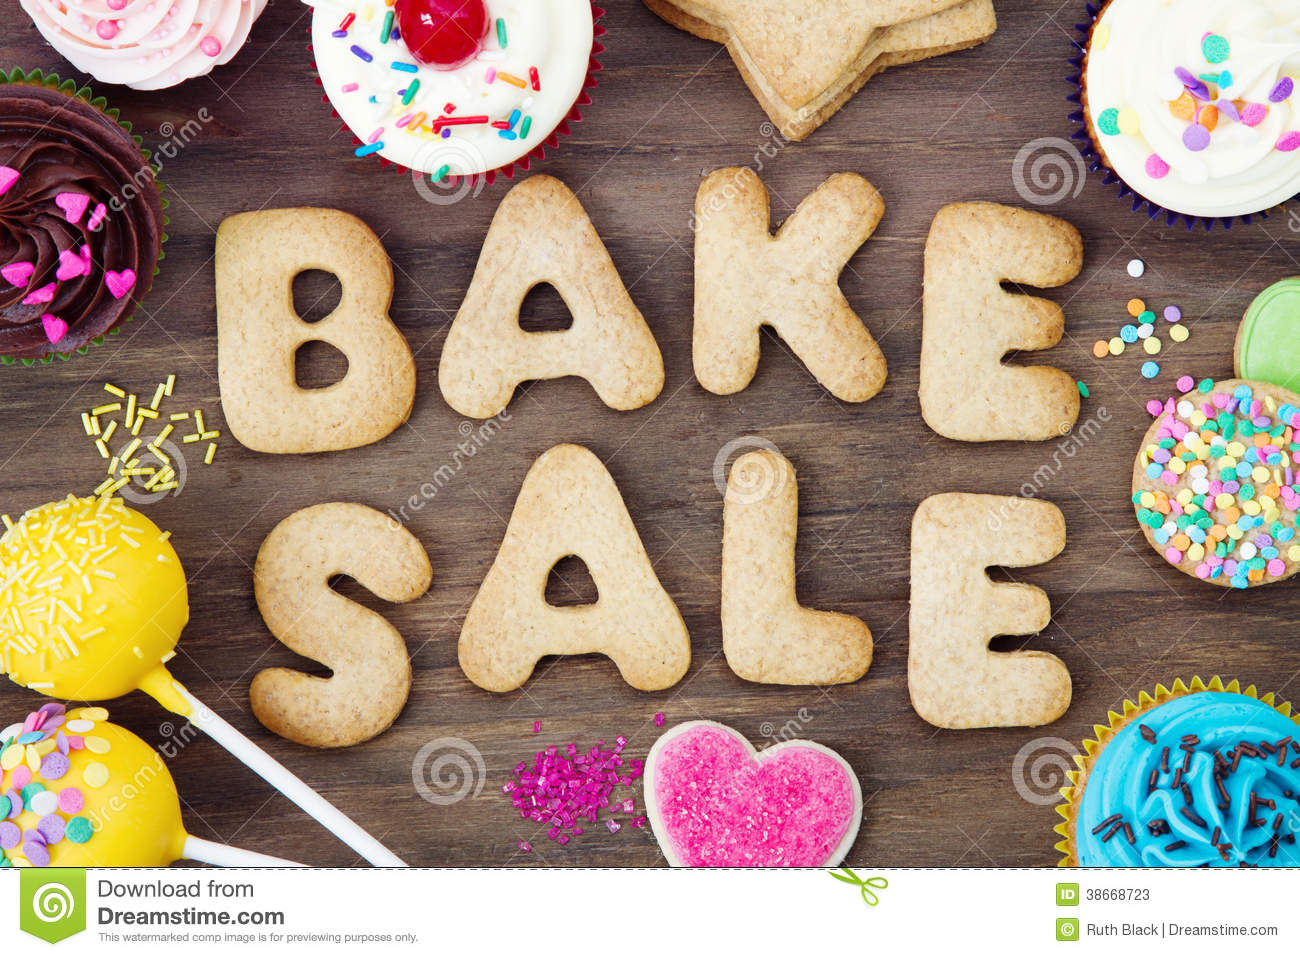 bake cupcake stock photography image  bake cookies stock photos